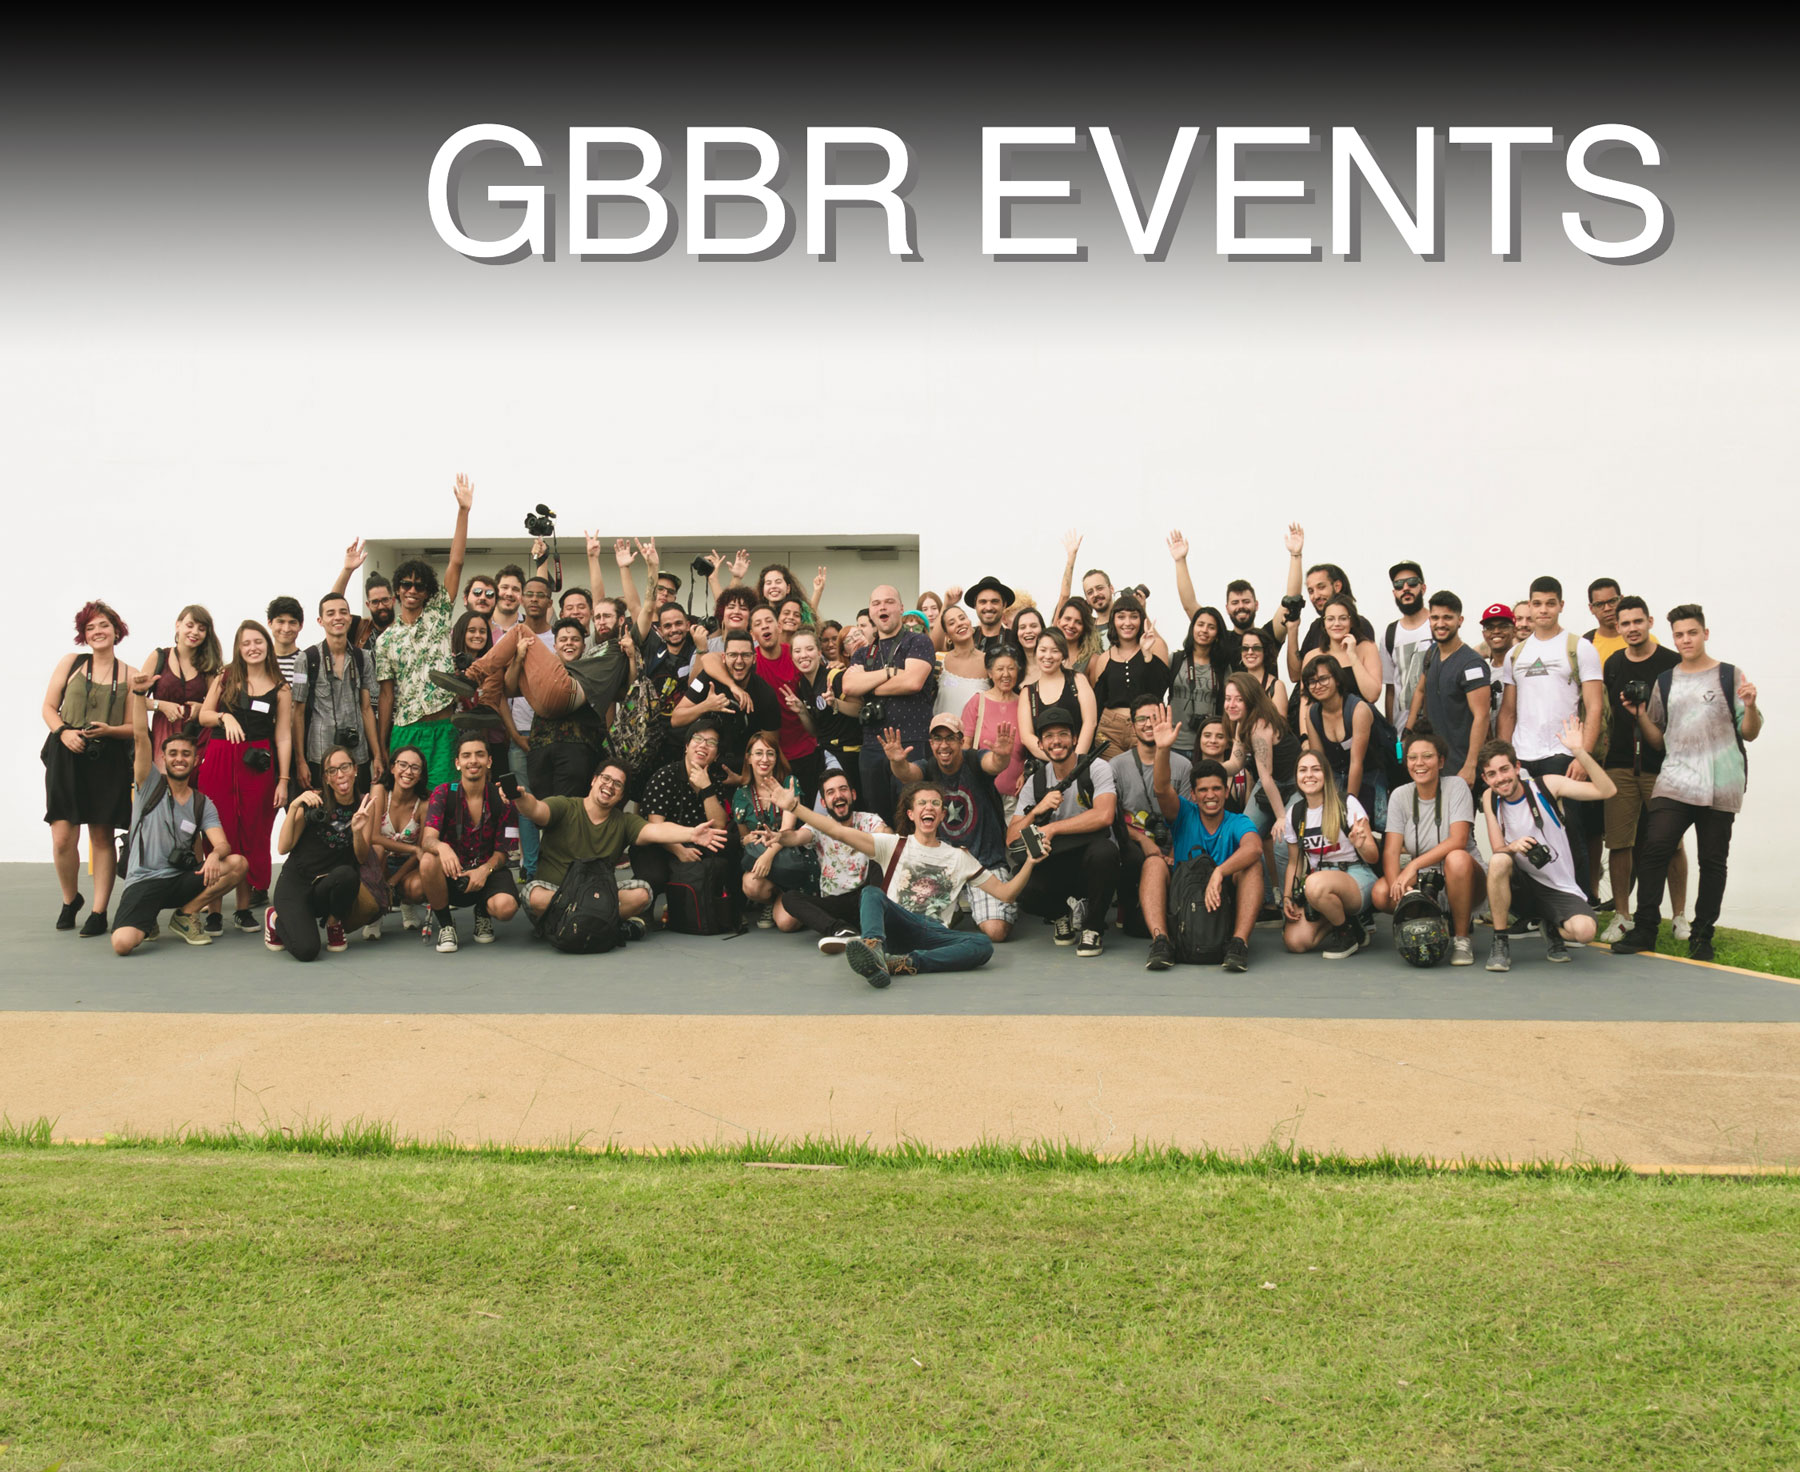 GBBR events